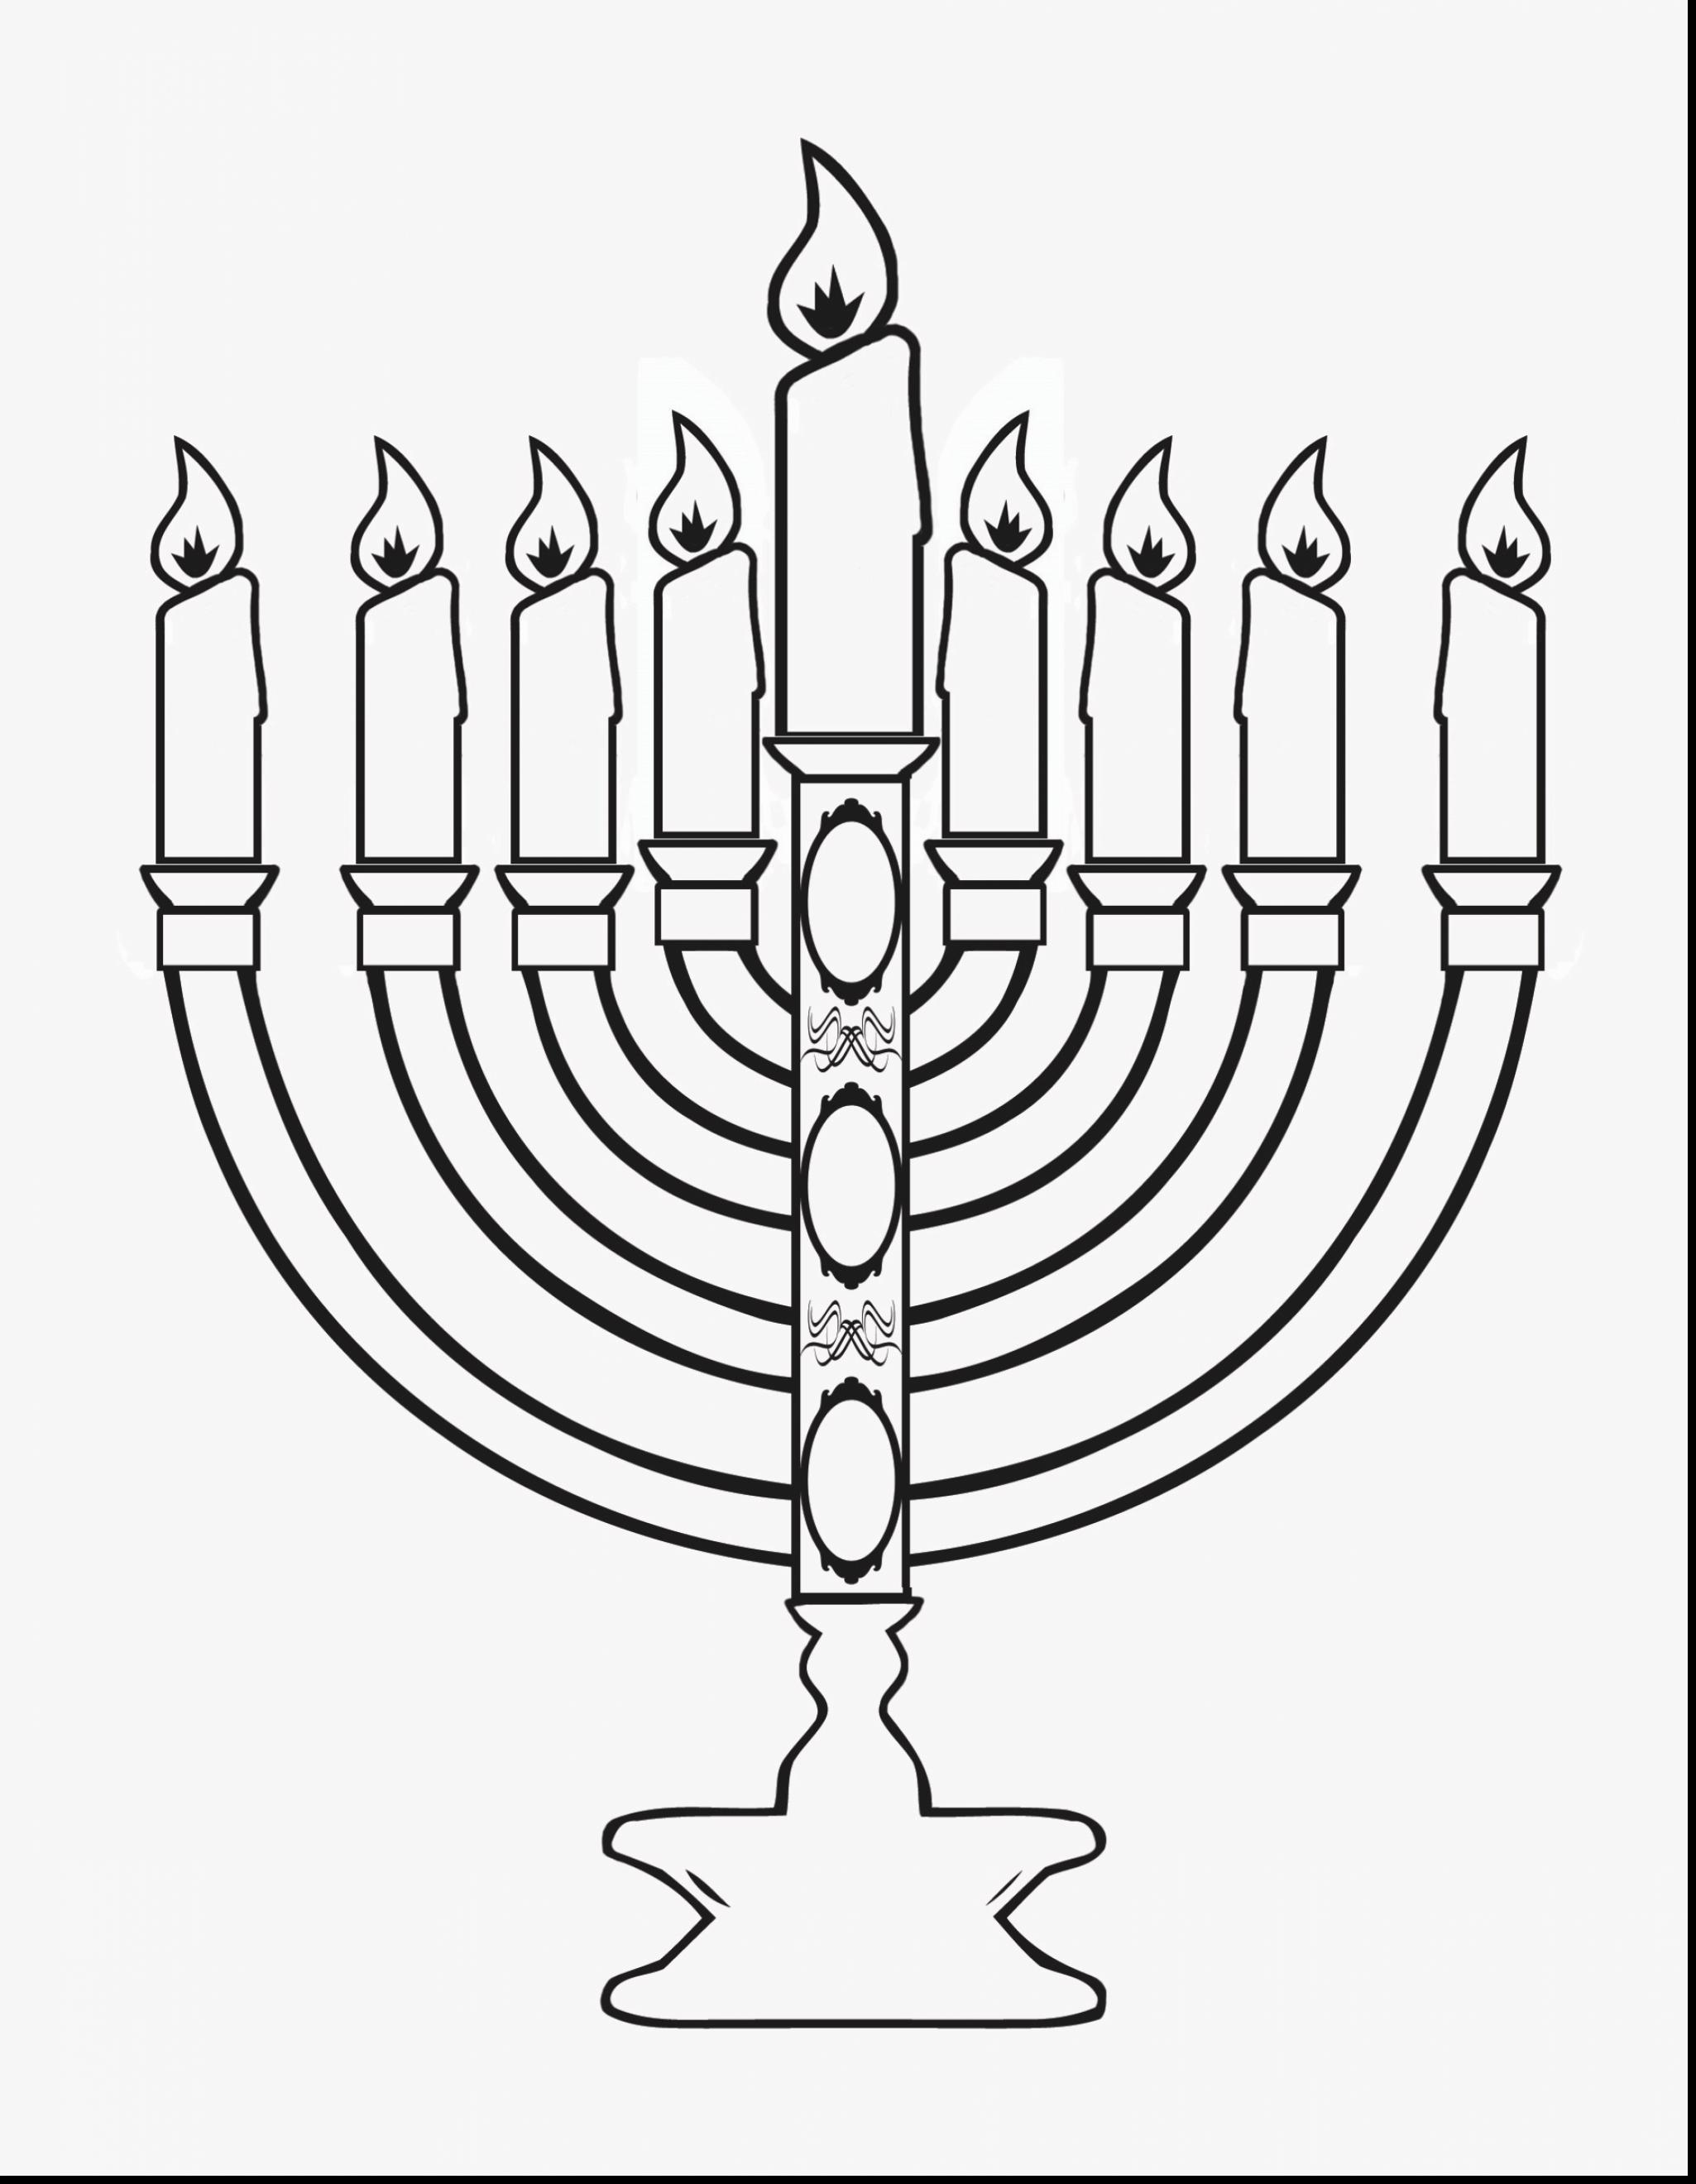 menorah coloring page menorah colouring page part 4 free resource for teaching menorah coloring page